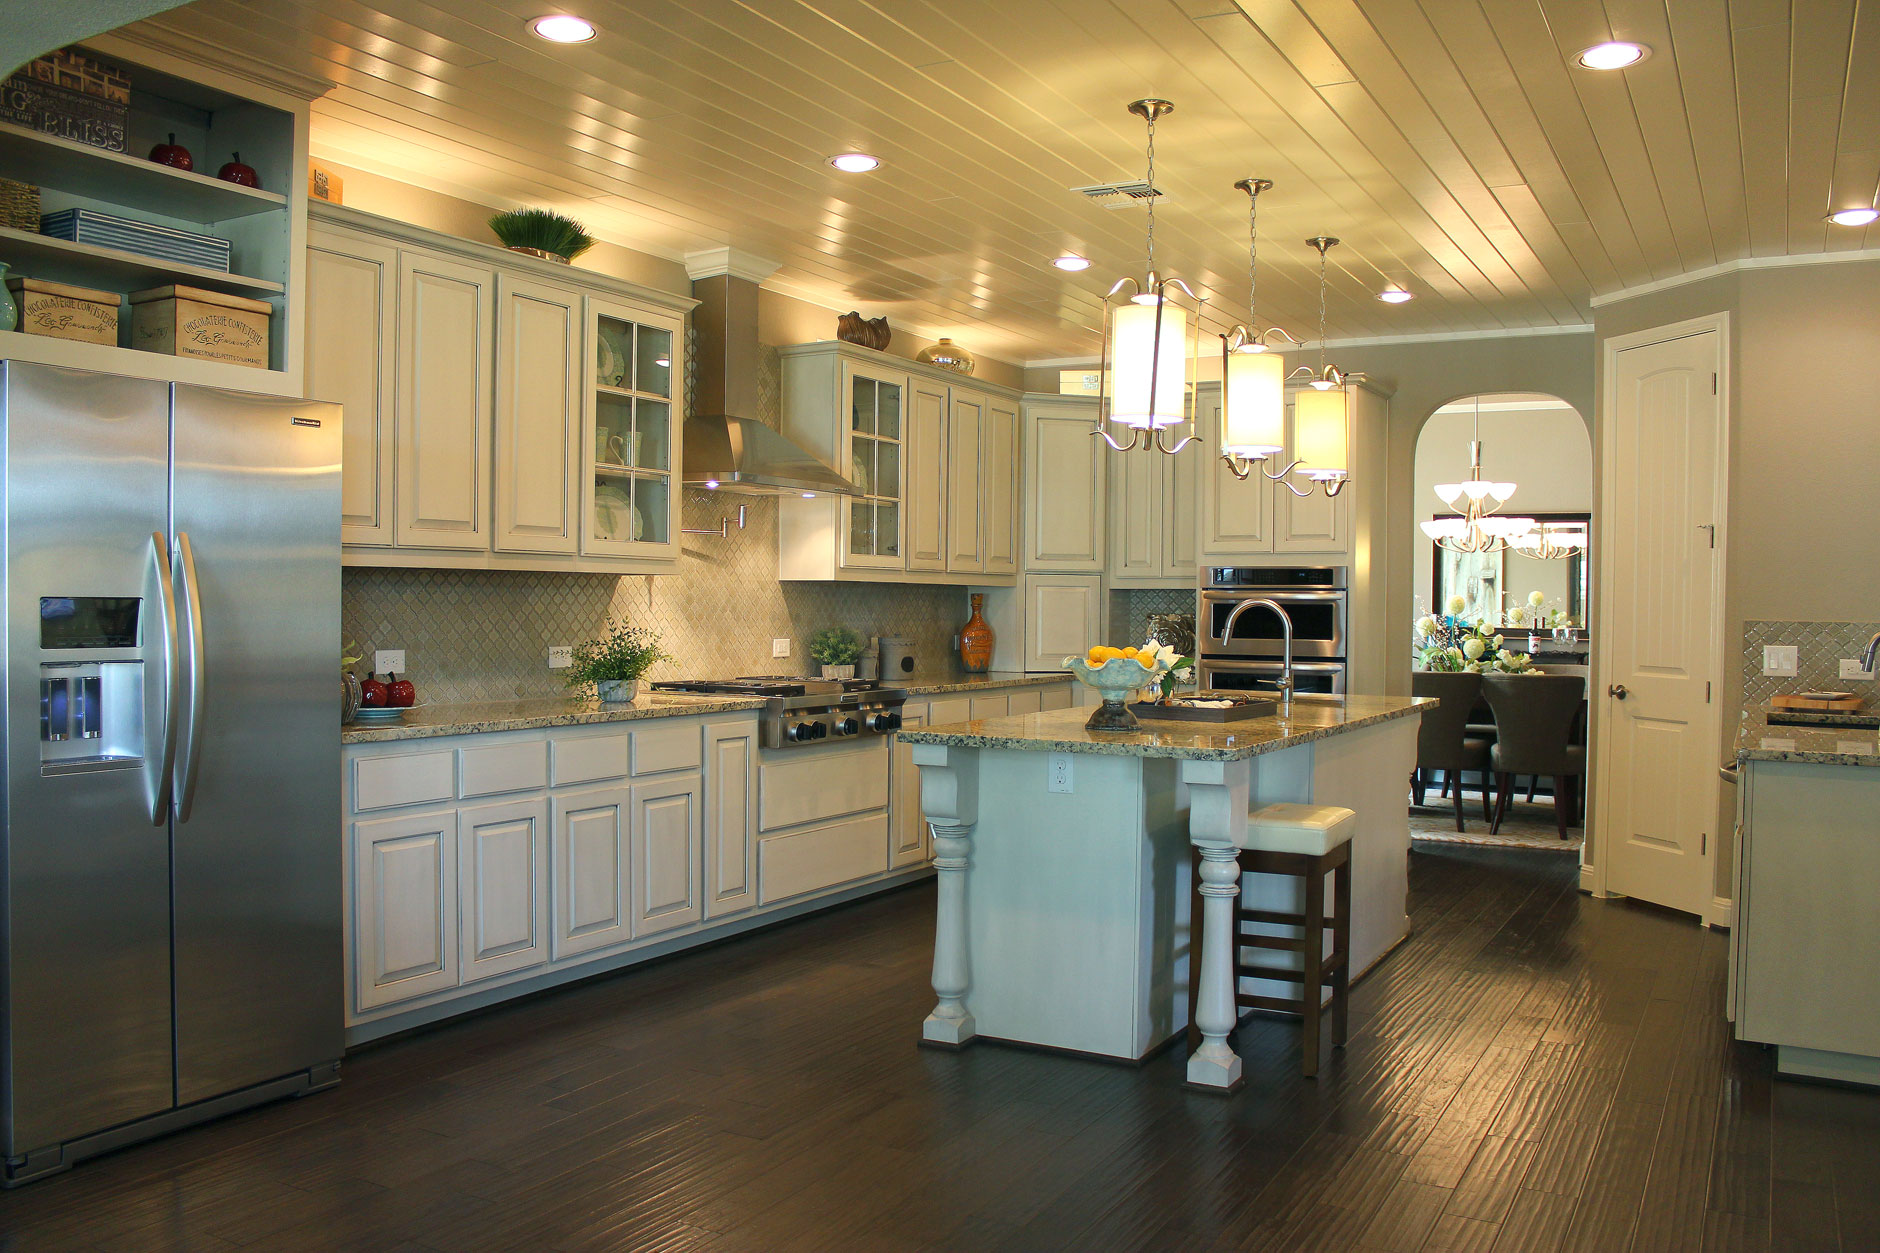 kitchen with island posts and open shelves above refrigerator in bone with black glaze